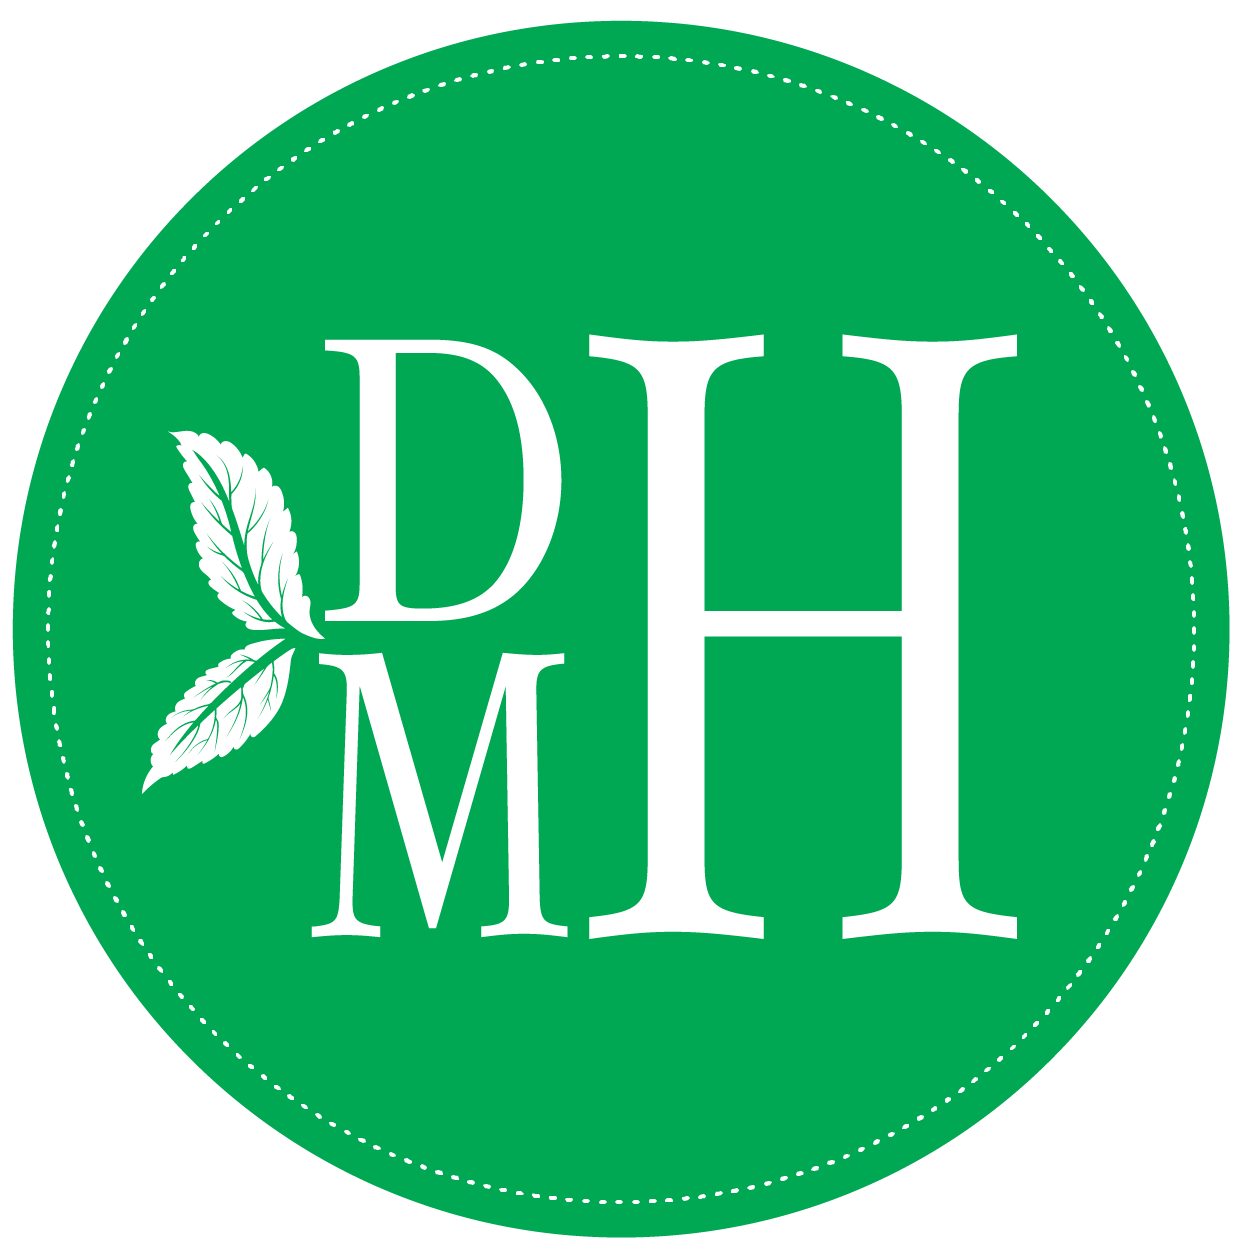 DMH-CircleLogo2outlines-1250x1250.png